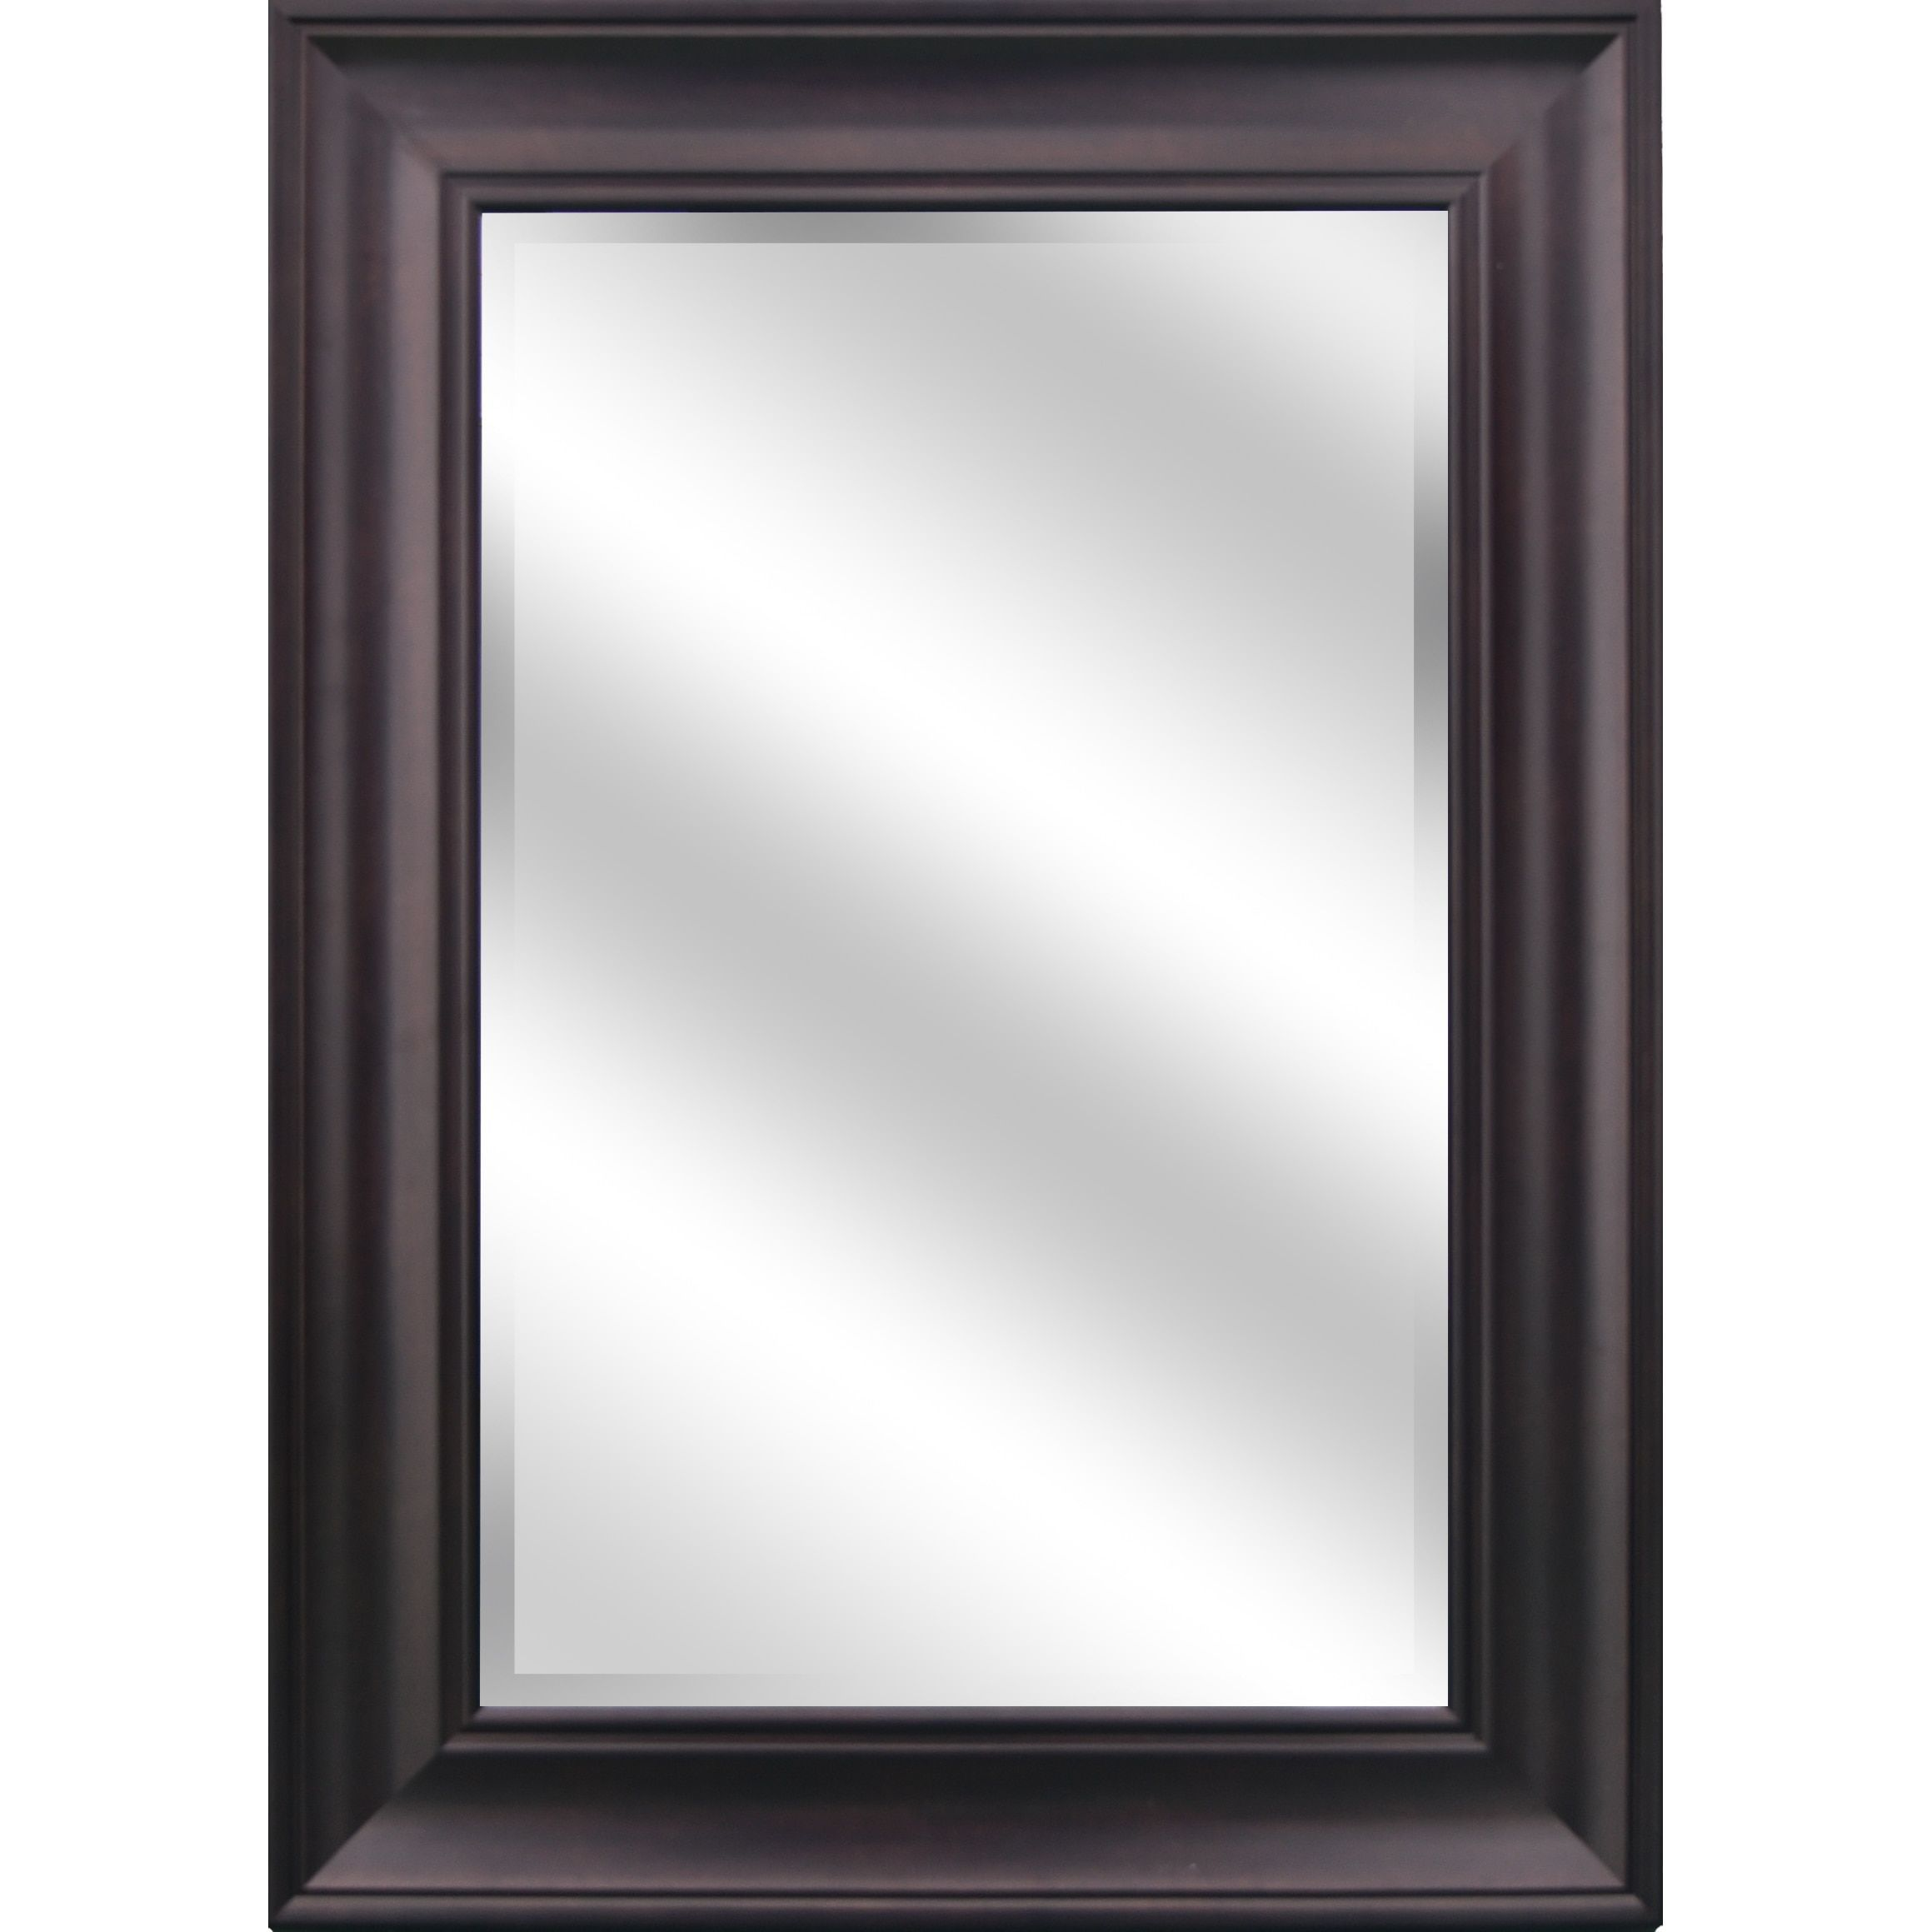 Oil Rubbed Bronze Mirror Oil Rubbed Bronze 23x27 5 Frame Framed